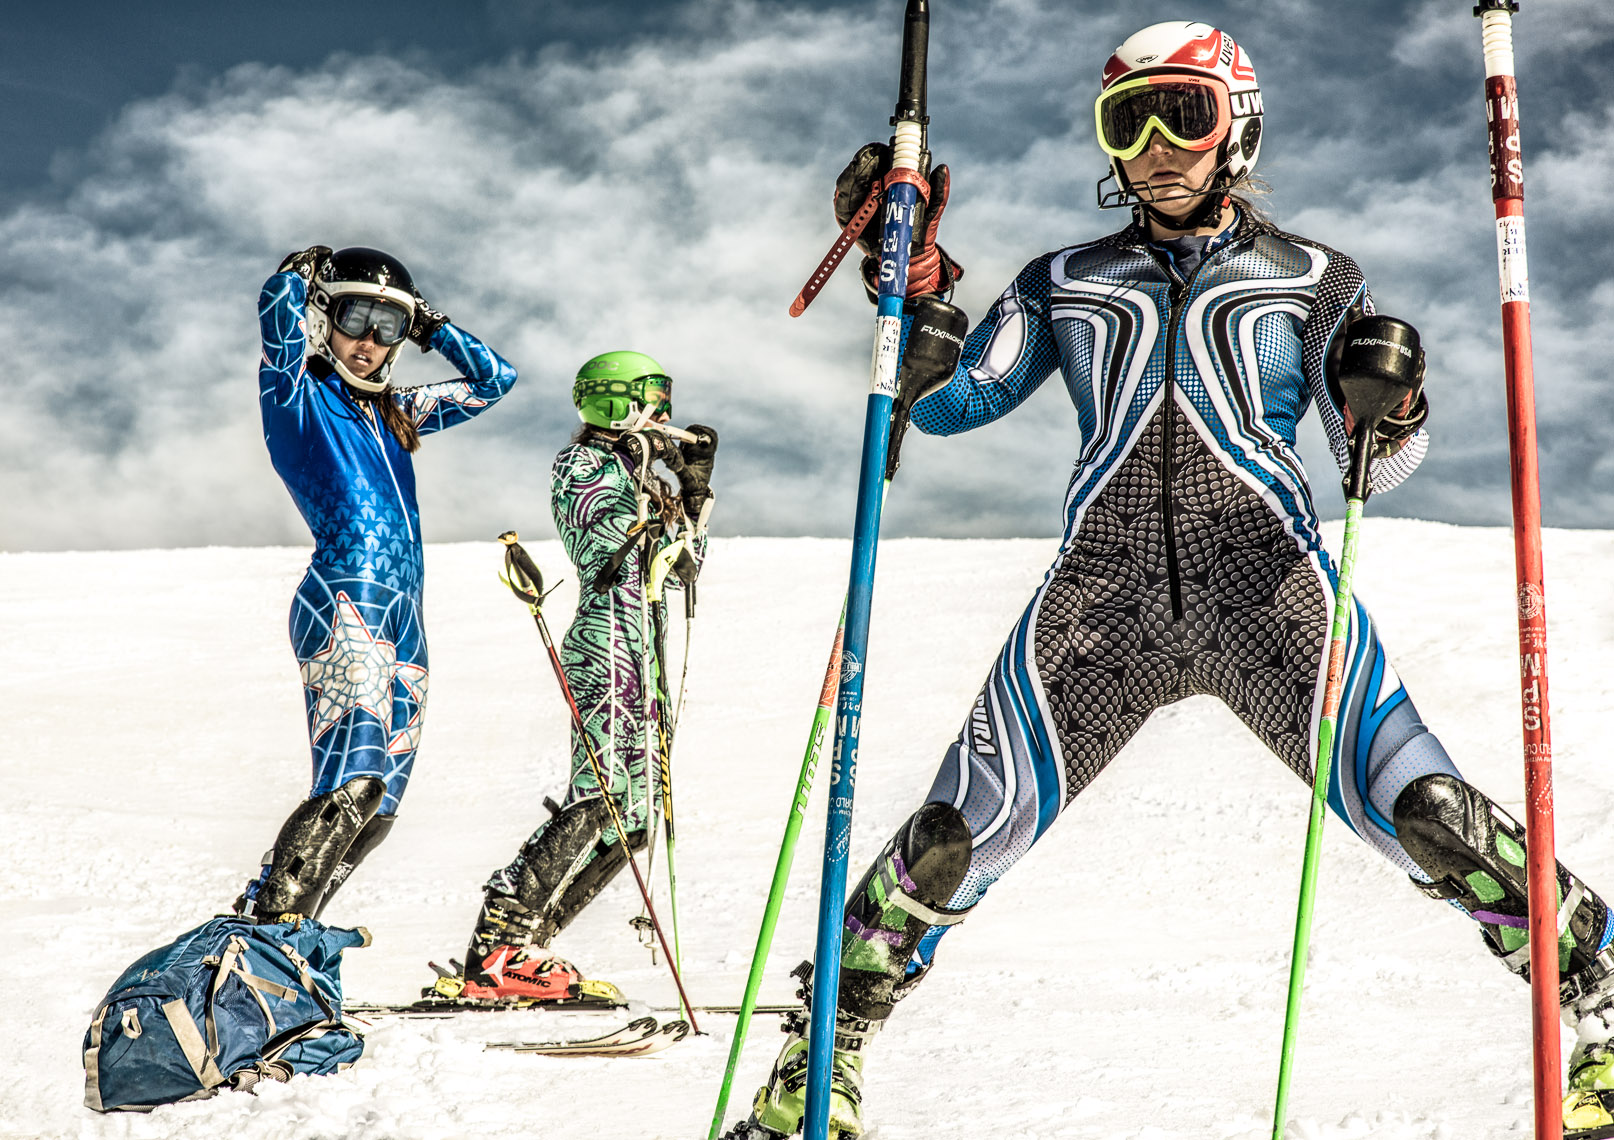 Kevin Steele - winter athletes and ski racers get ready